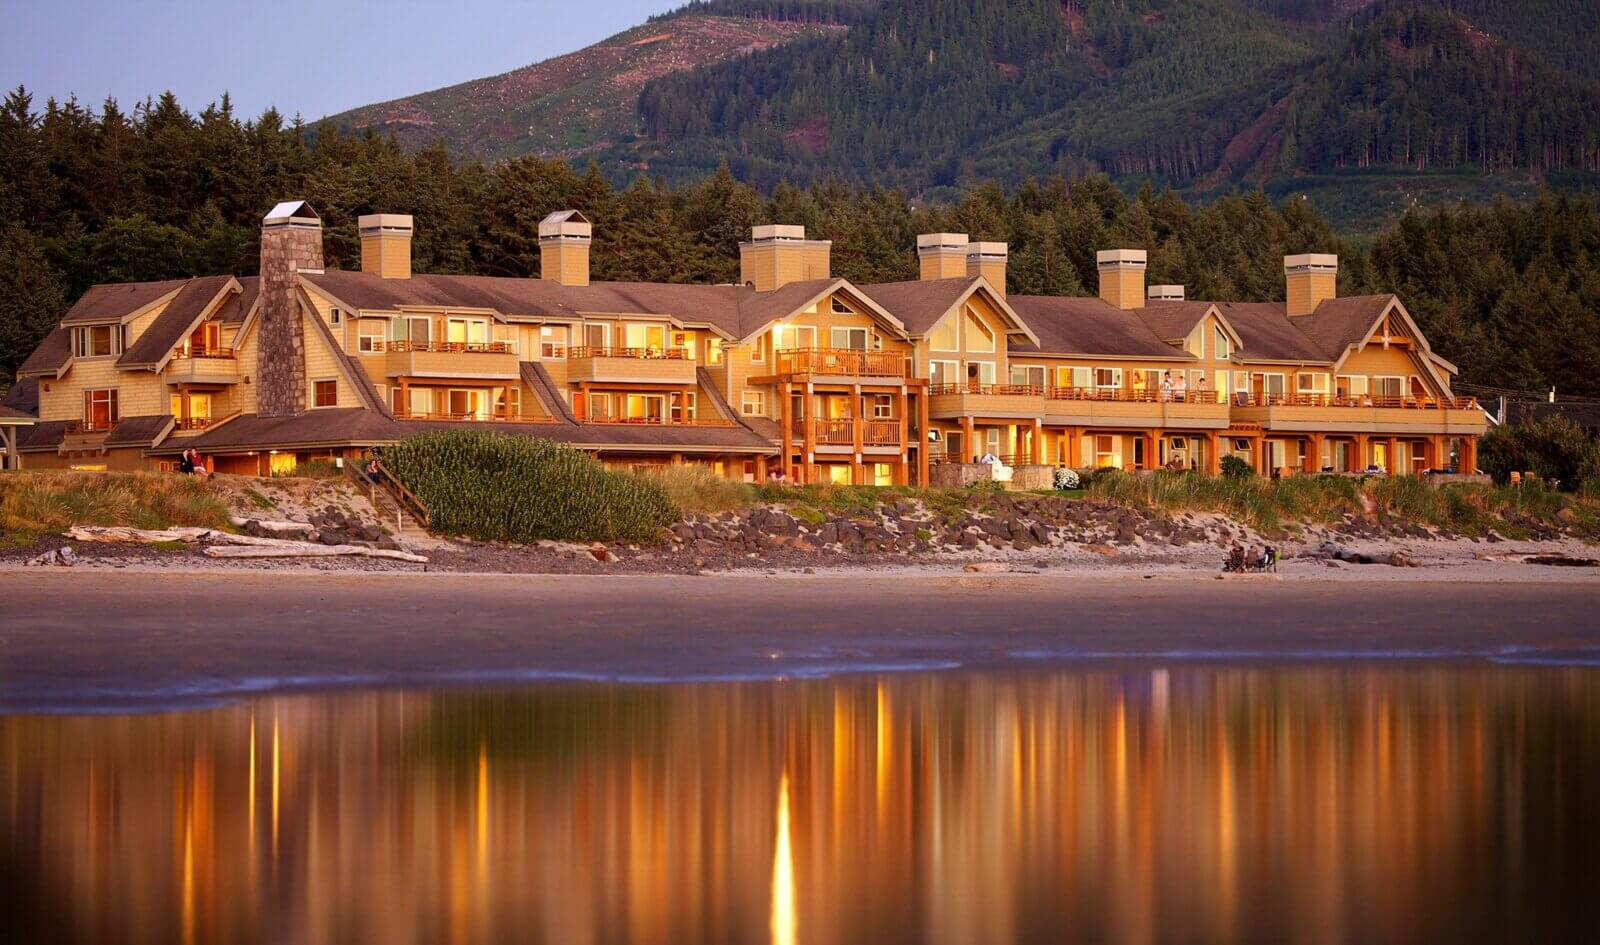 Come stay in Cannon Beach, Oregon